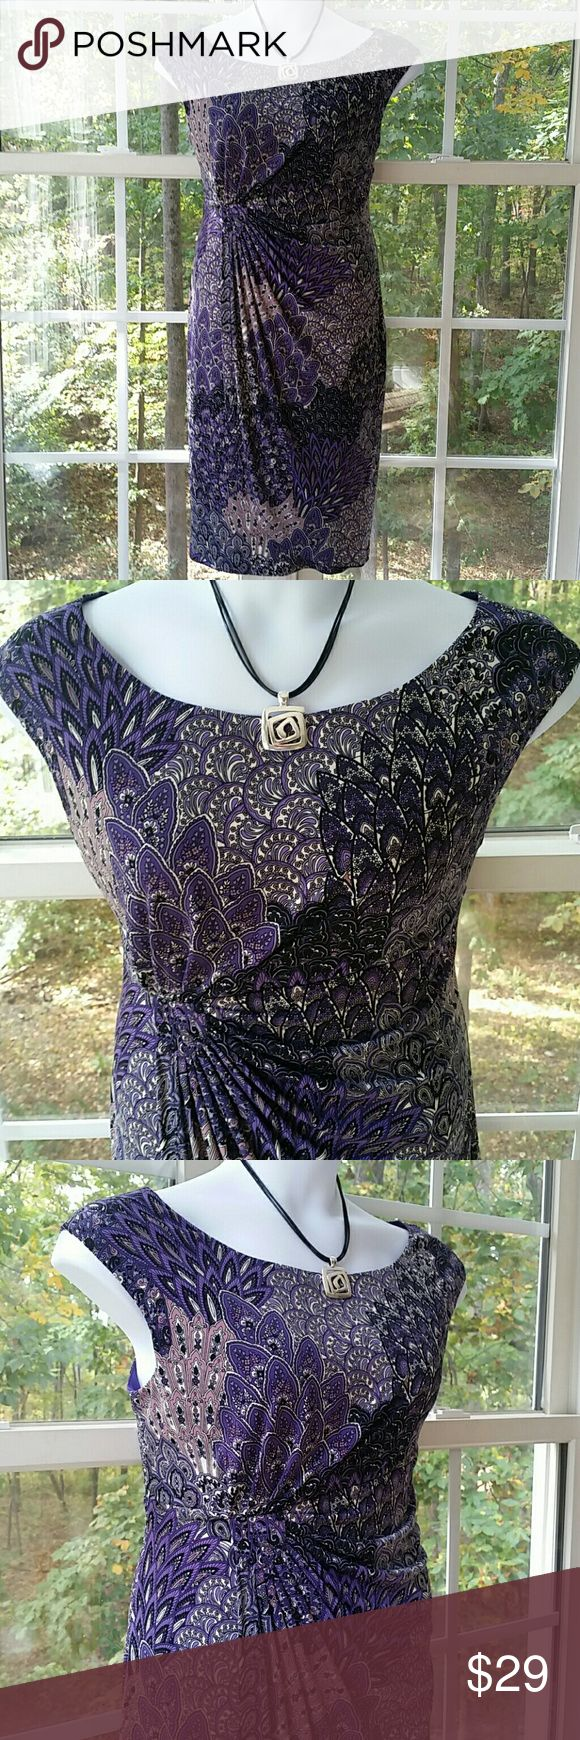 Connected Apparel Beautiful Purple Passion Connected Apparel Beautiful Purple Passion Dress. Excellent condition. Please let me know if you have any questions. Connected  Dresses